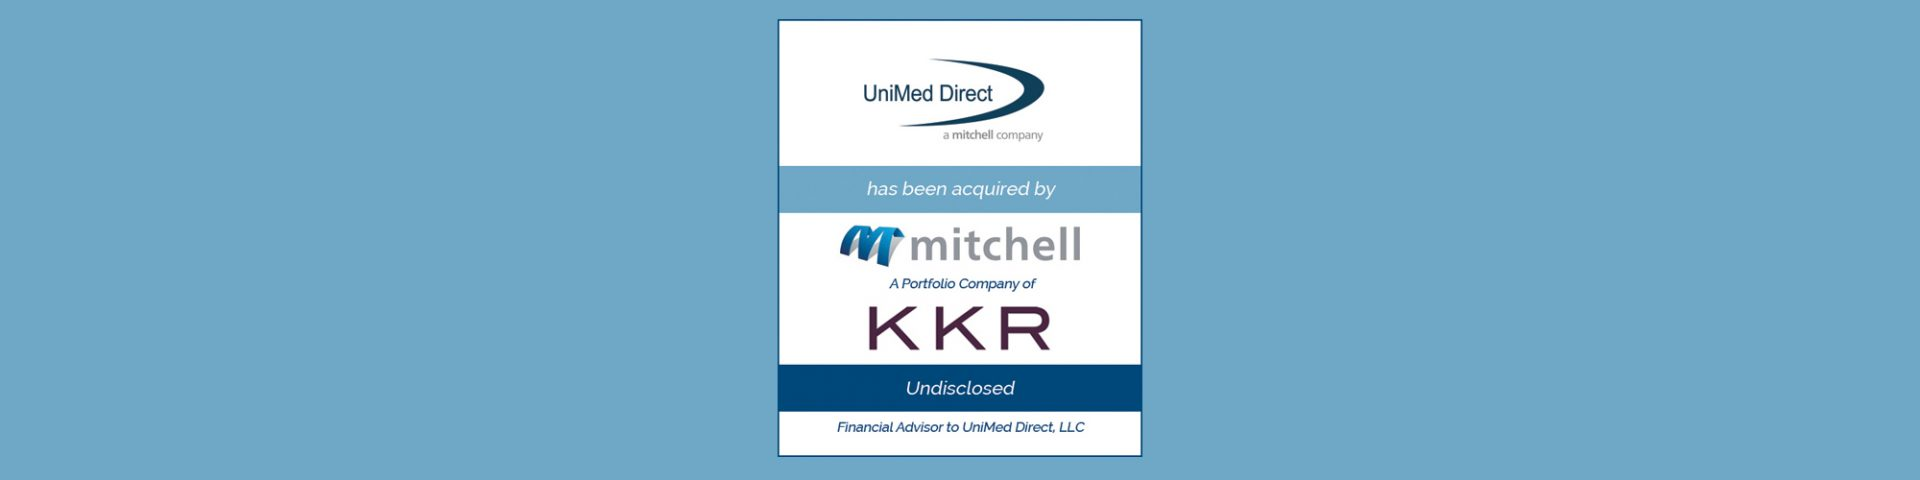 Mitchell International Acquires UniMed Direct | Bailey Southwell & Co.